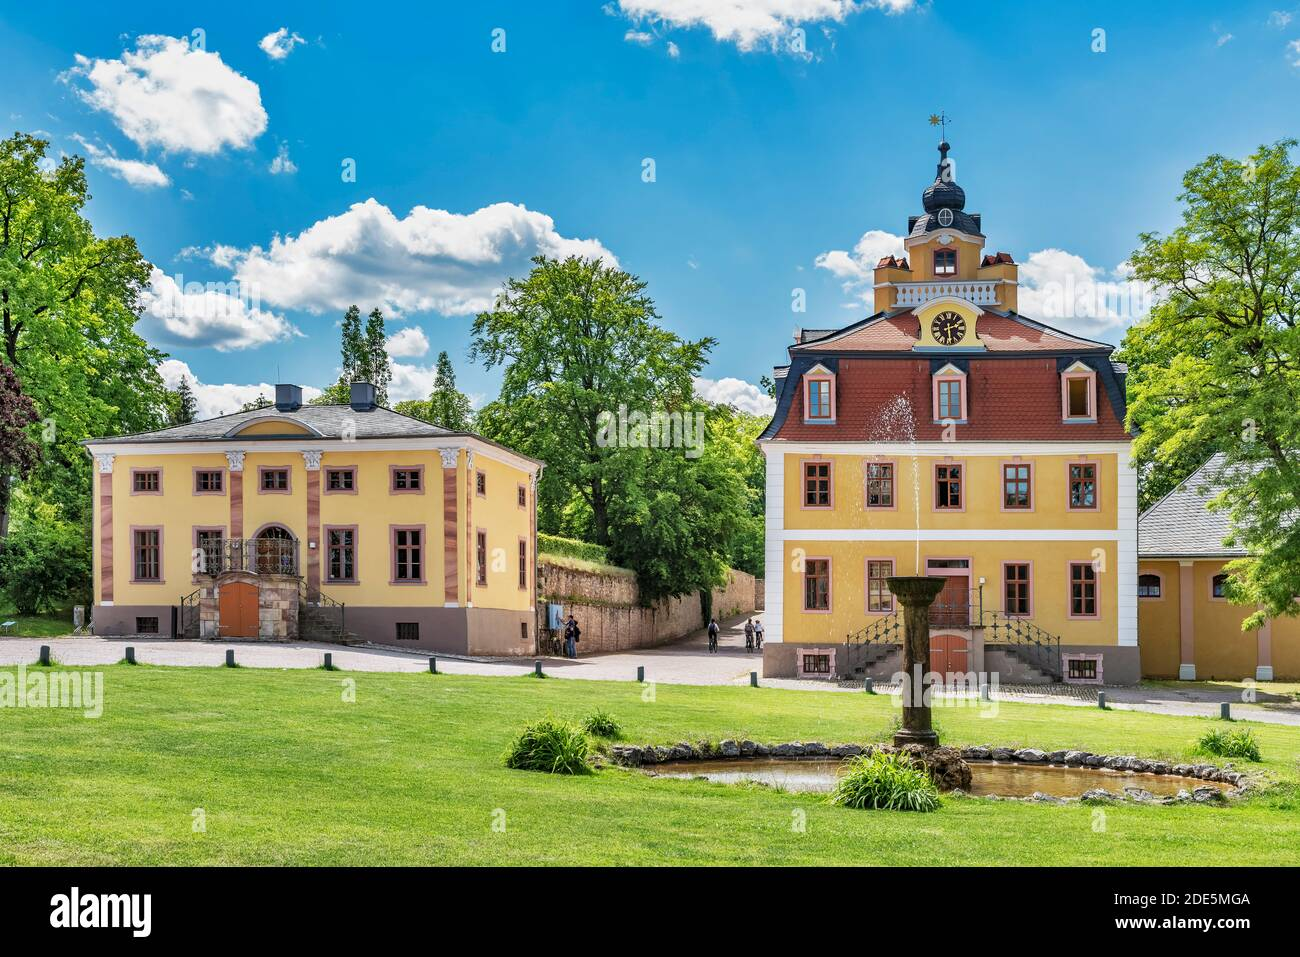 Cavalier houses in the Belvedere Palace, Weimar, Thuringia, Germany, Europe Stock Photo